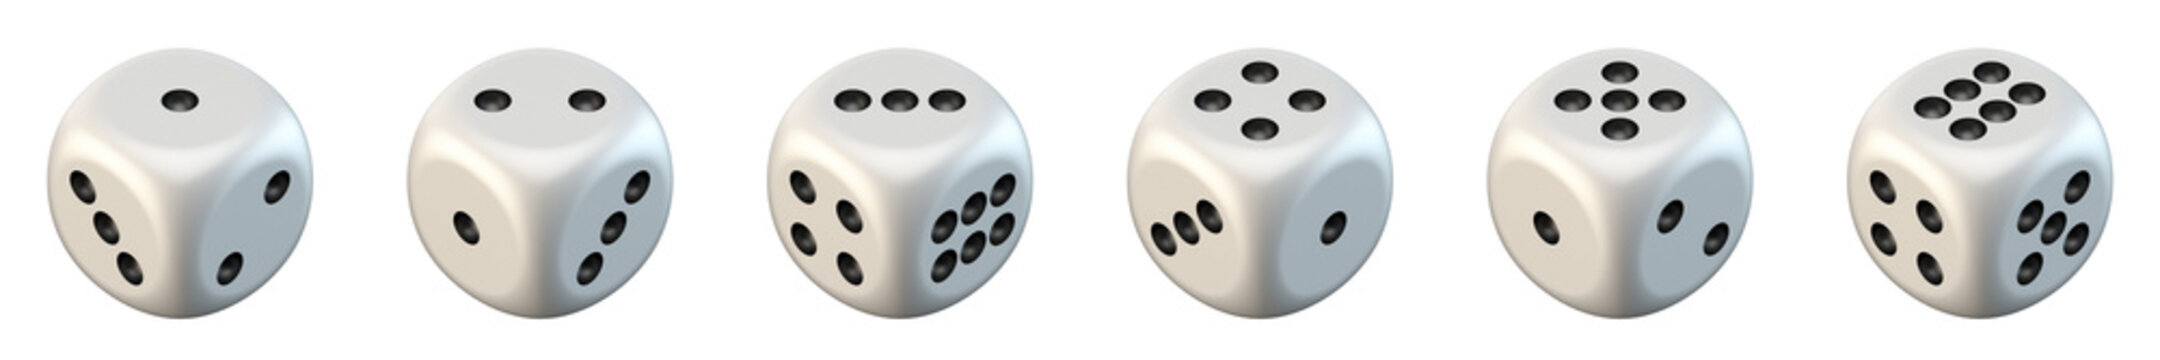 Six white game dices 3D